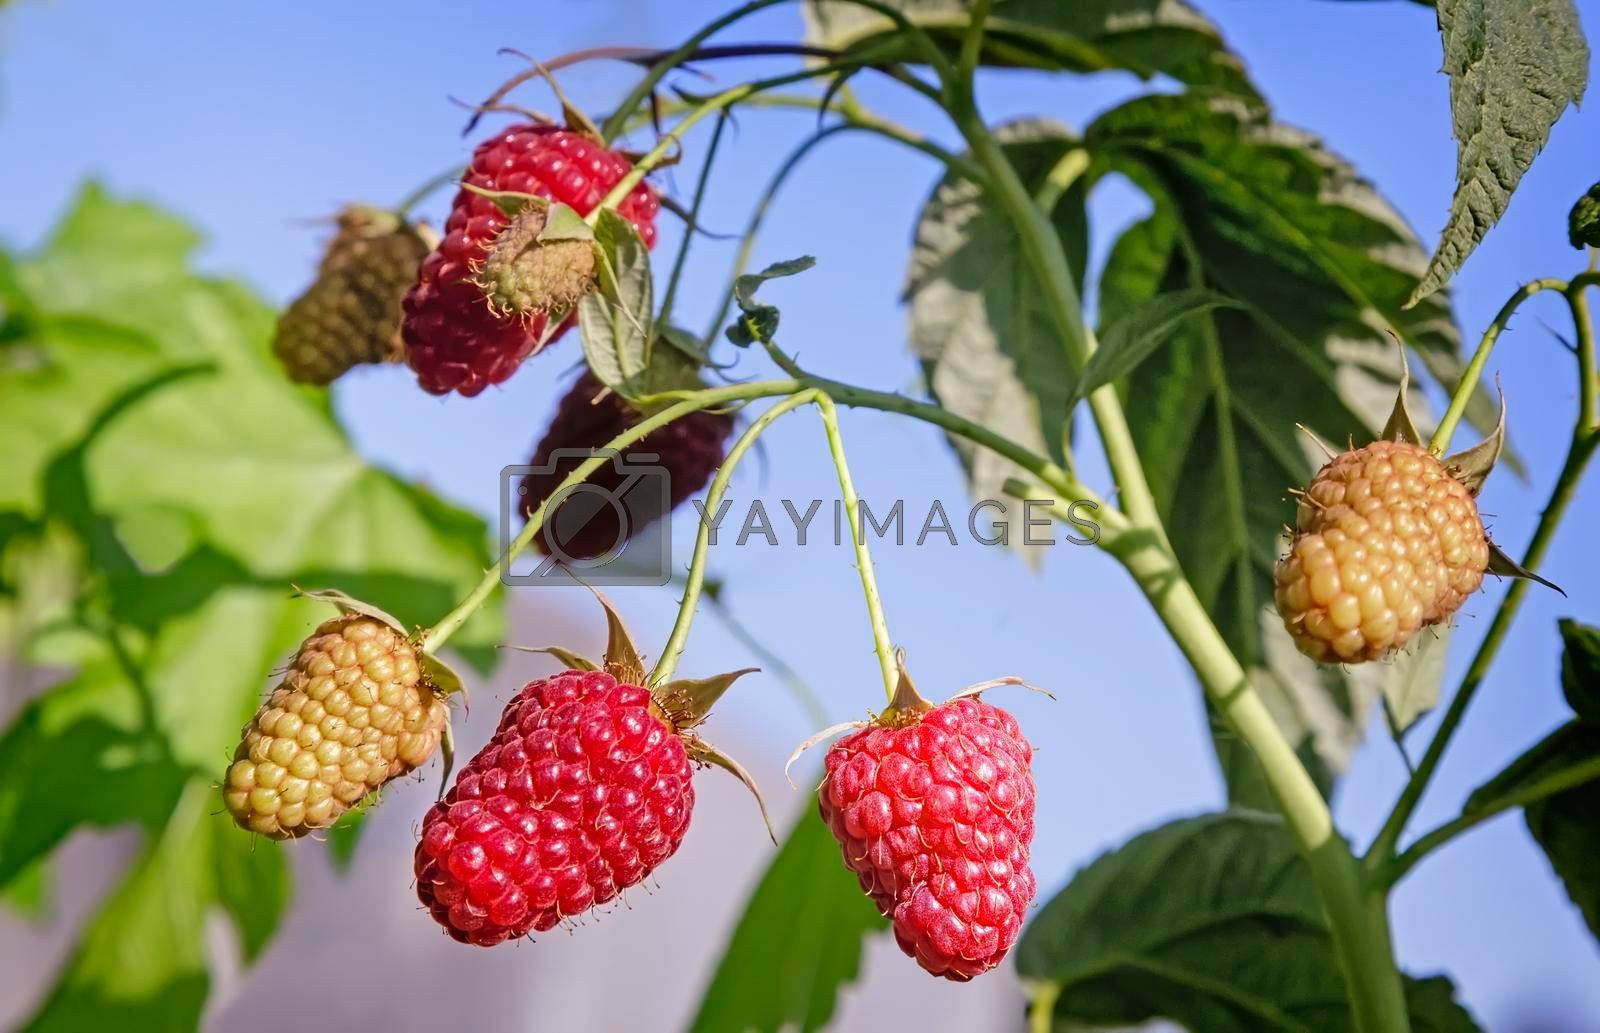 In the garden on the branches of the raspberries among green leaves.